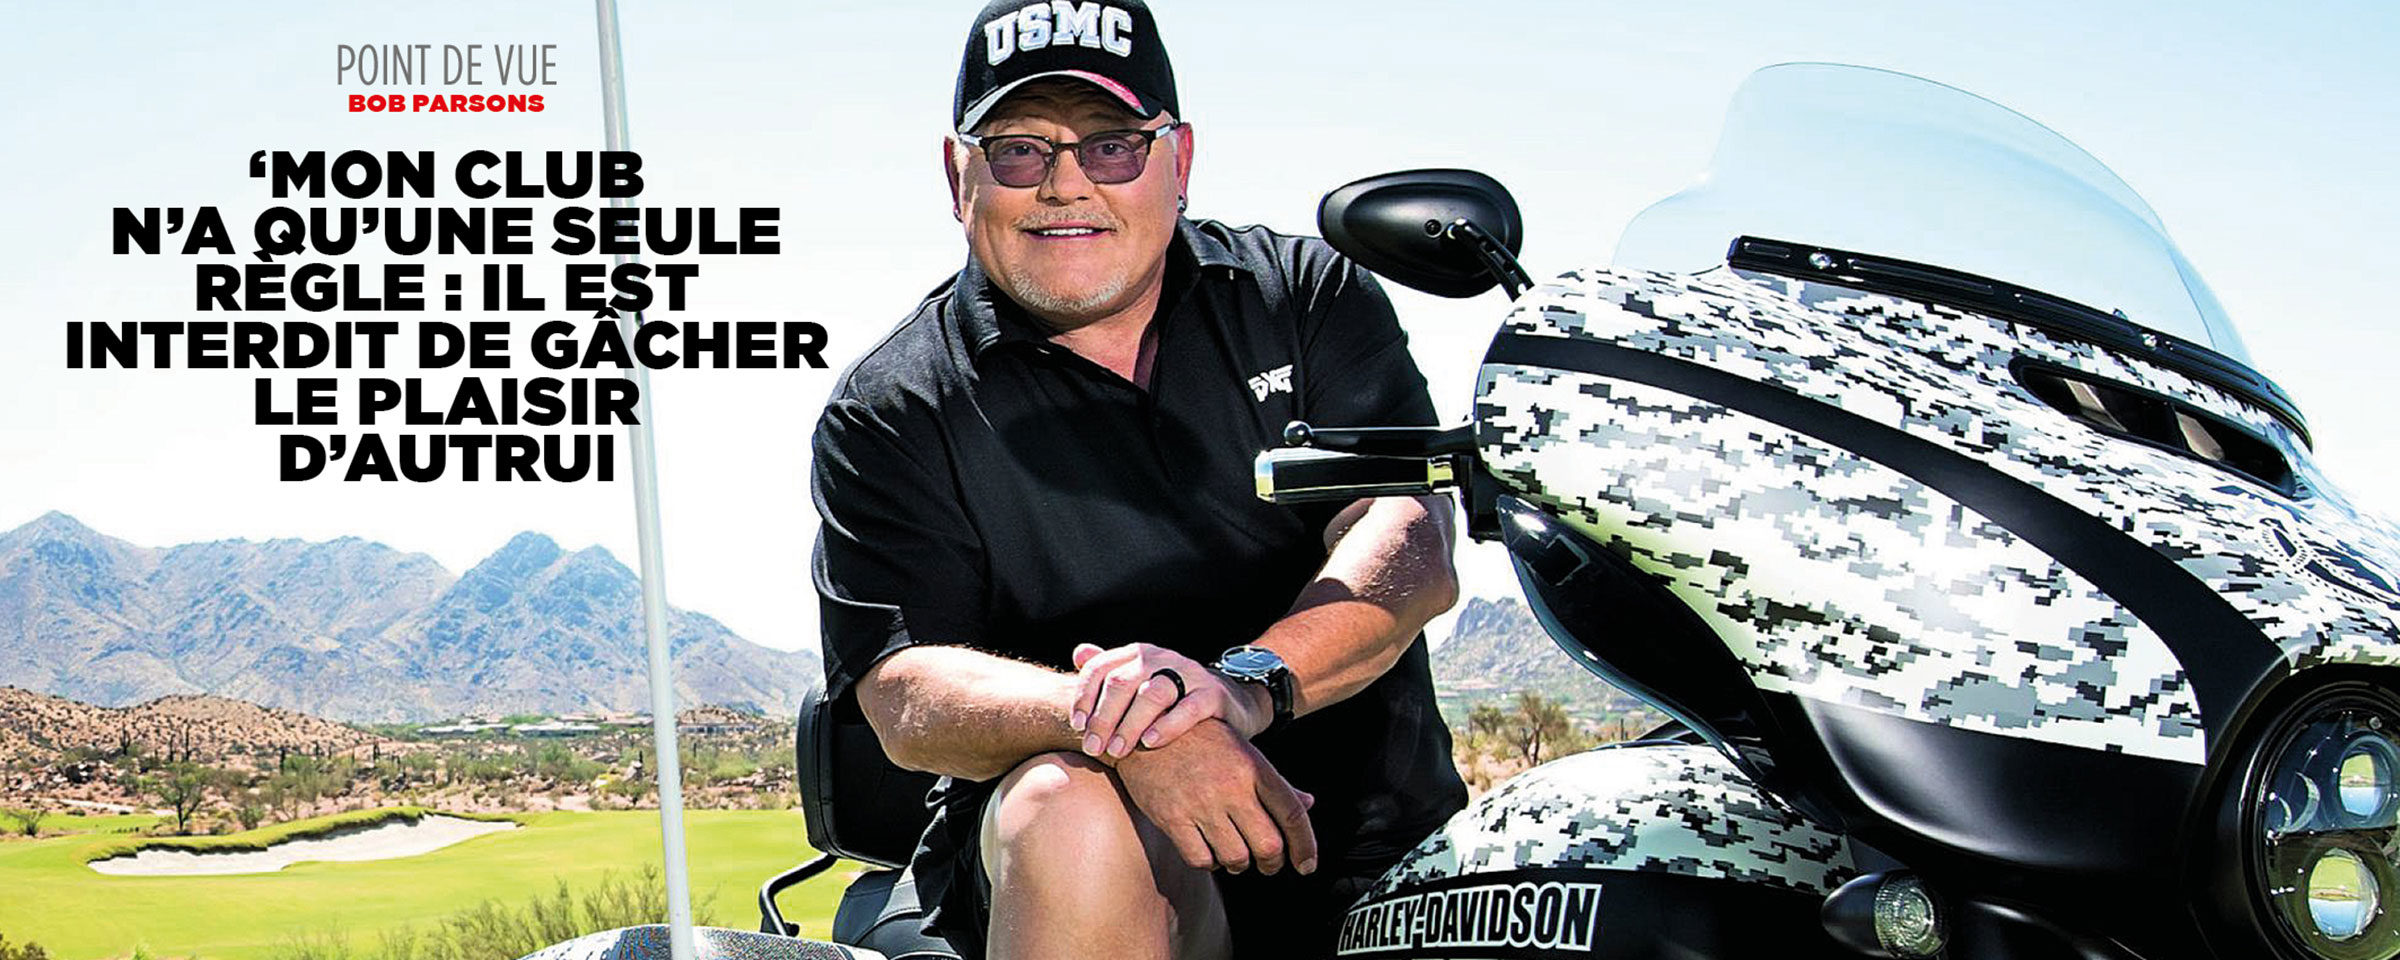 Point de vue : Bob PARSONS